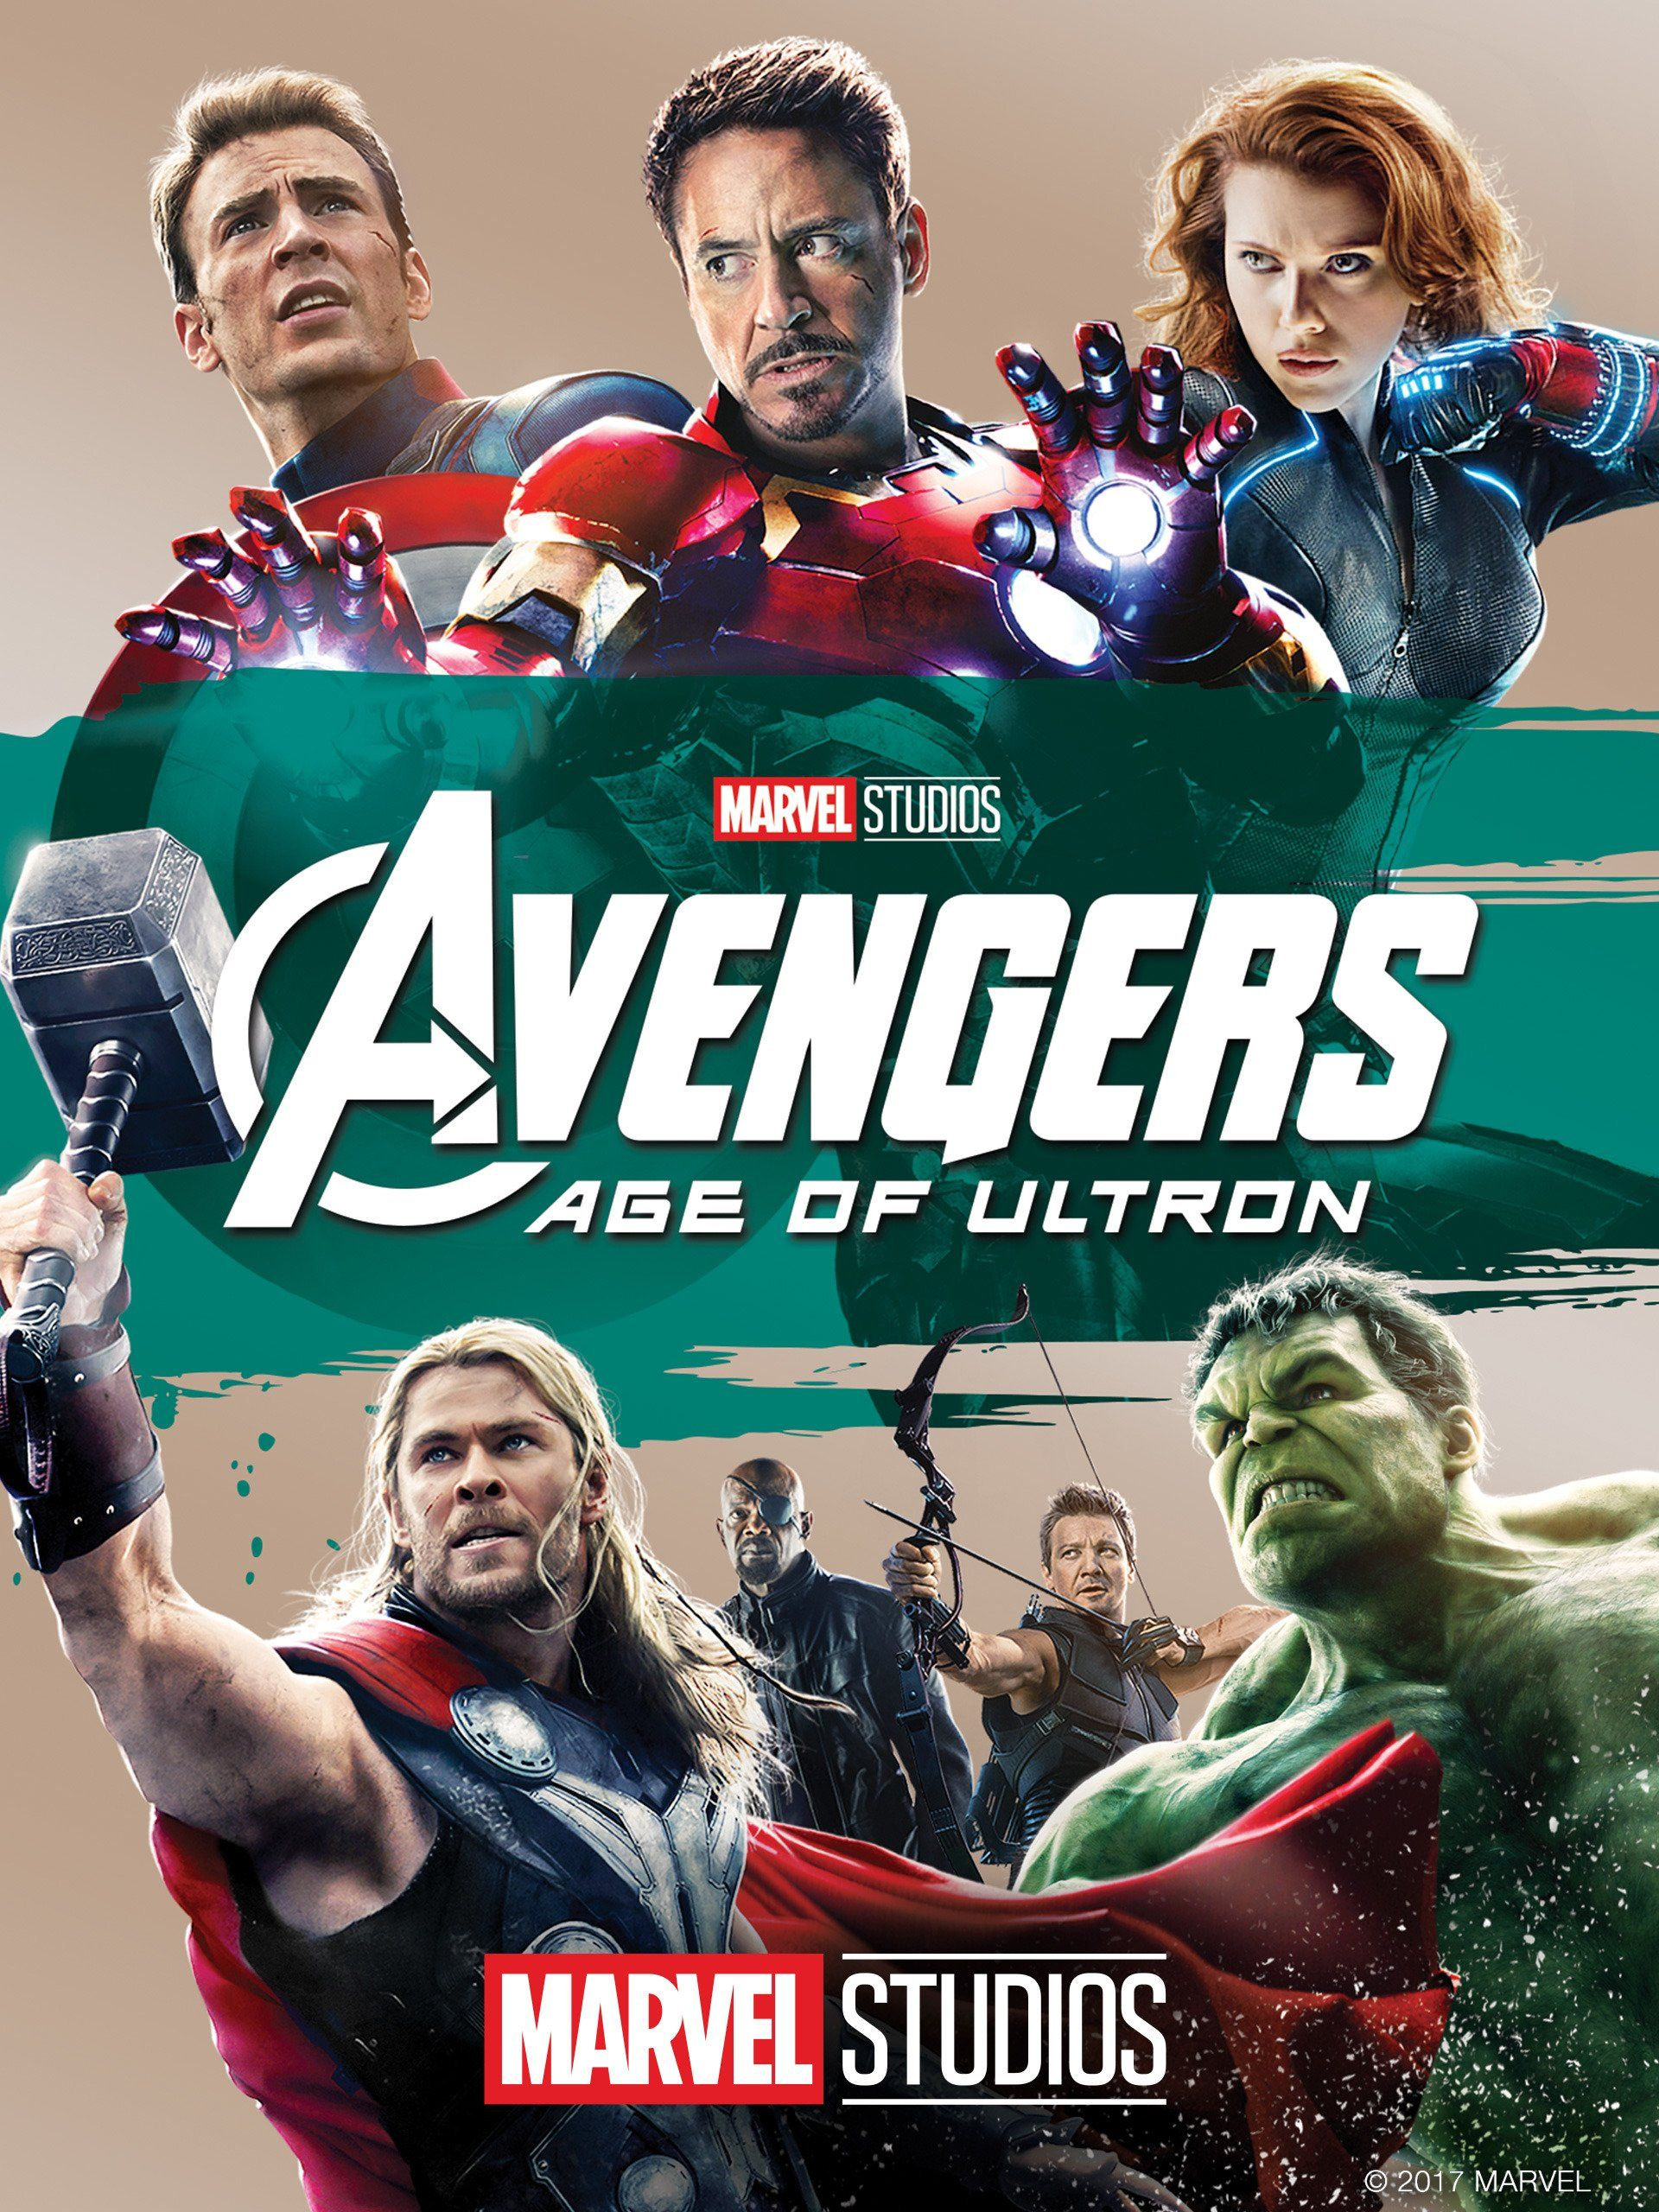 Pin By The Gamers Suite On Tv And Movies Age Of Ultron Avengers